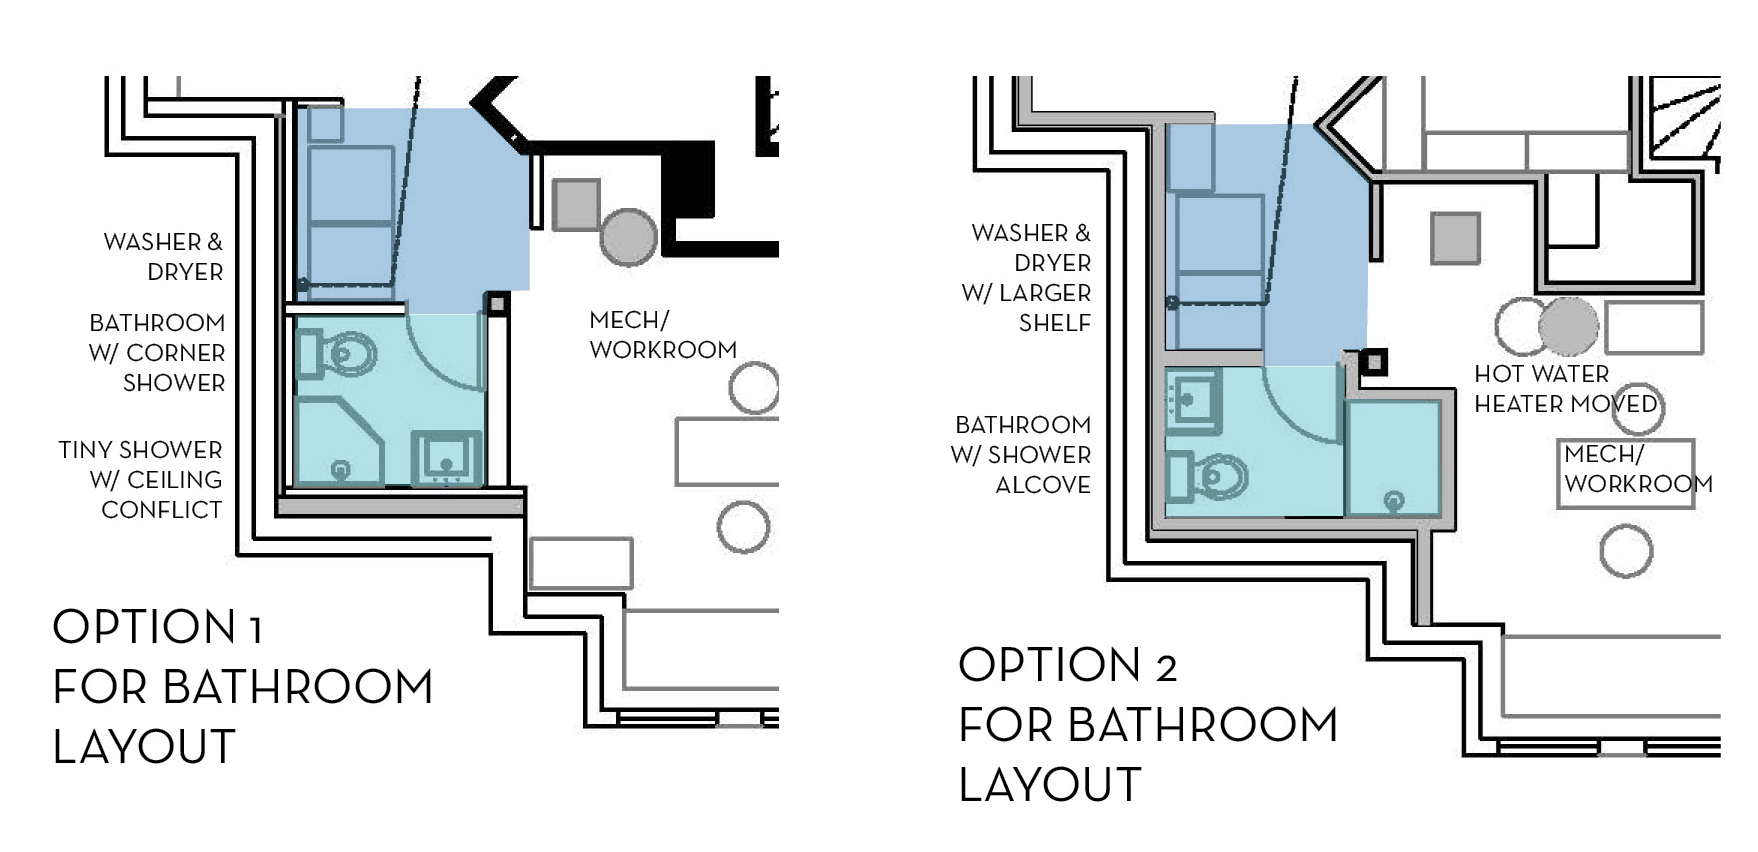 Outstanding 5 X 5 Basement Bathroom Layout 1758 x 852 · 415 kB · jpeg